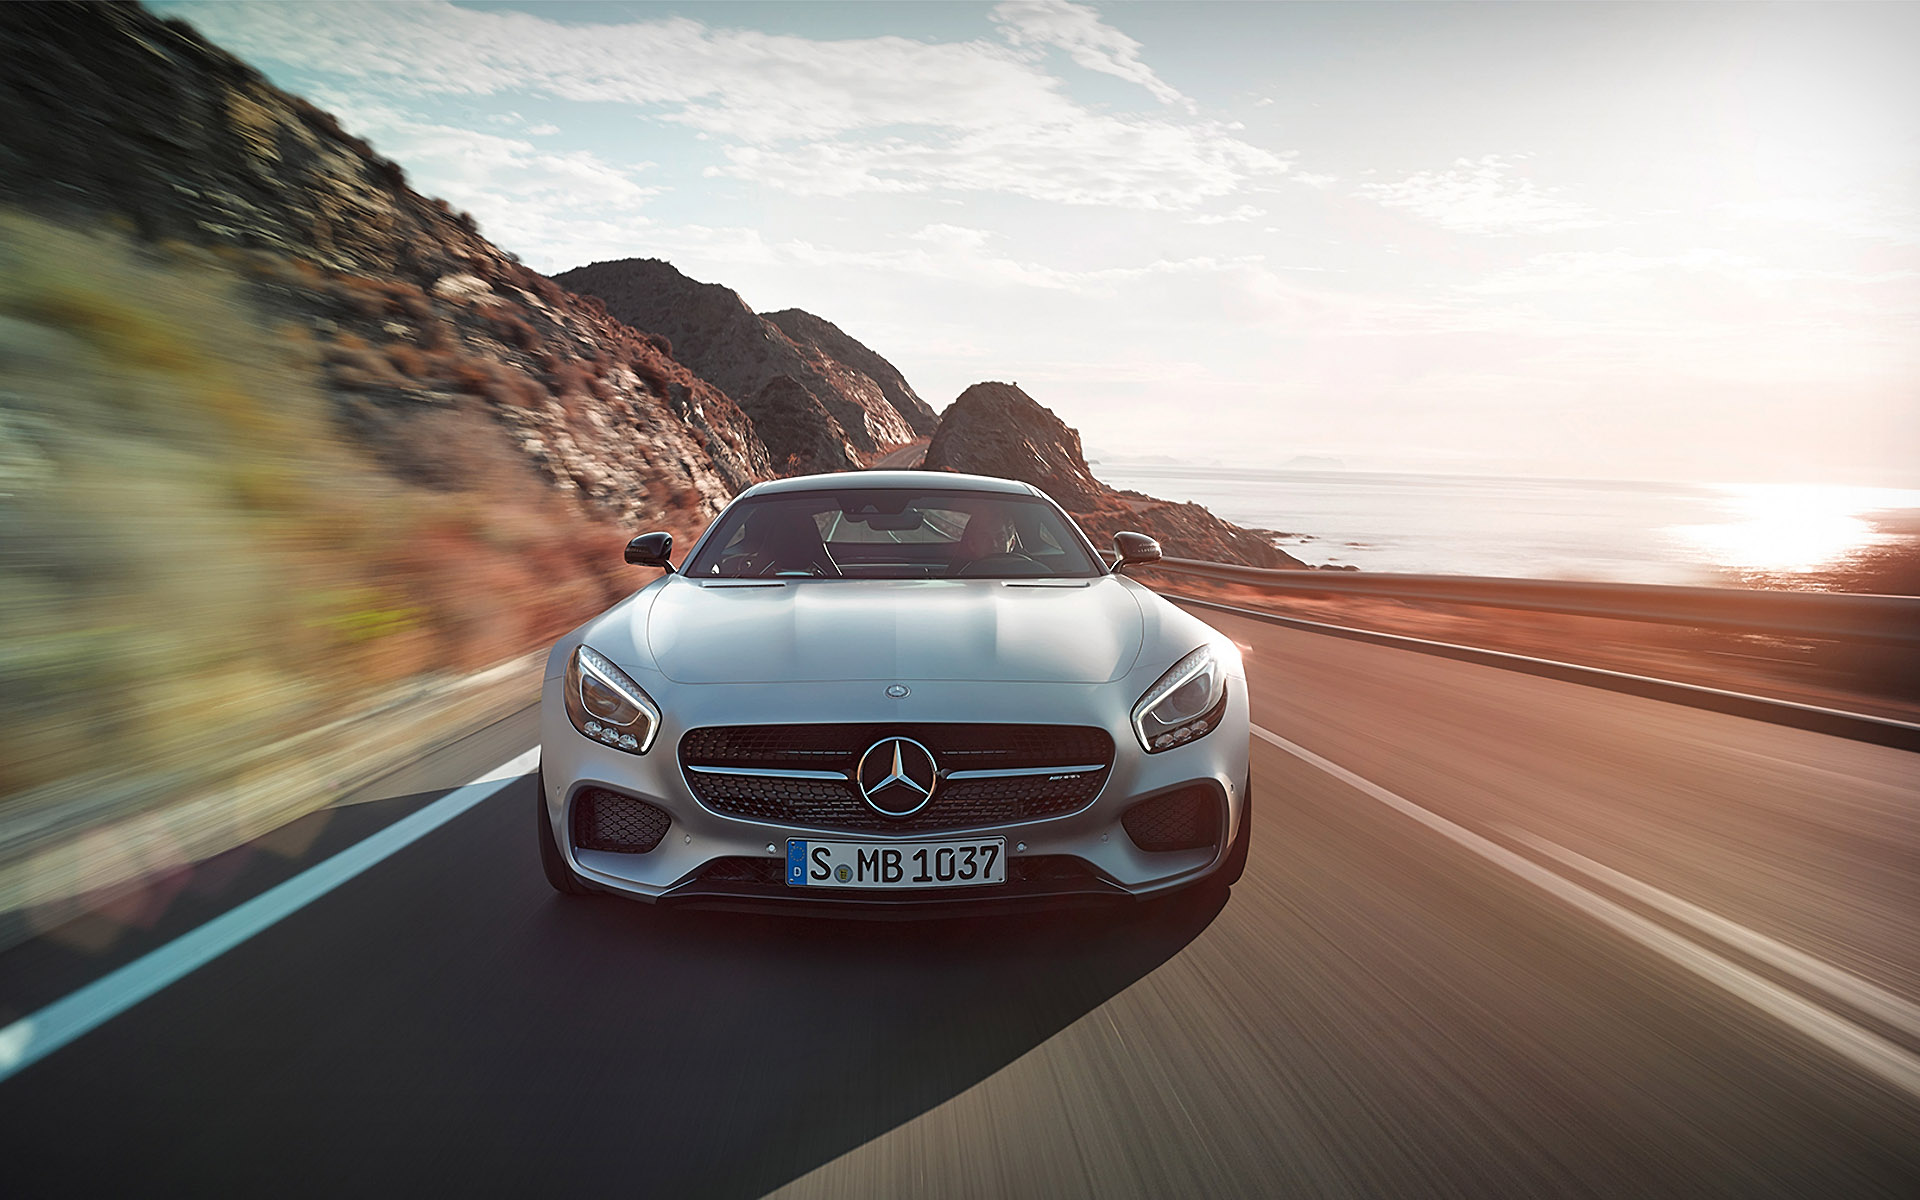 Hd Wallpapers Of Rain With Quotes Hd Mercedes Amg Background Pixelstalk Net